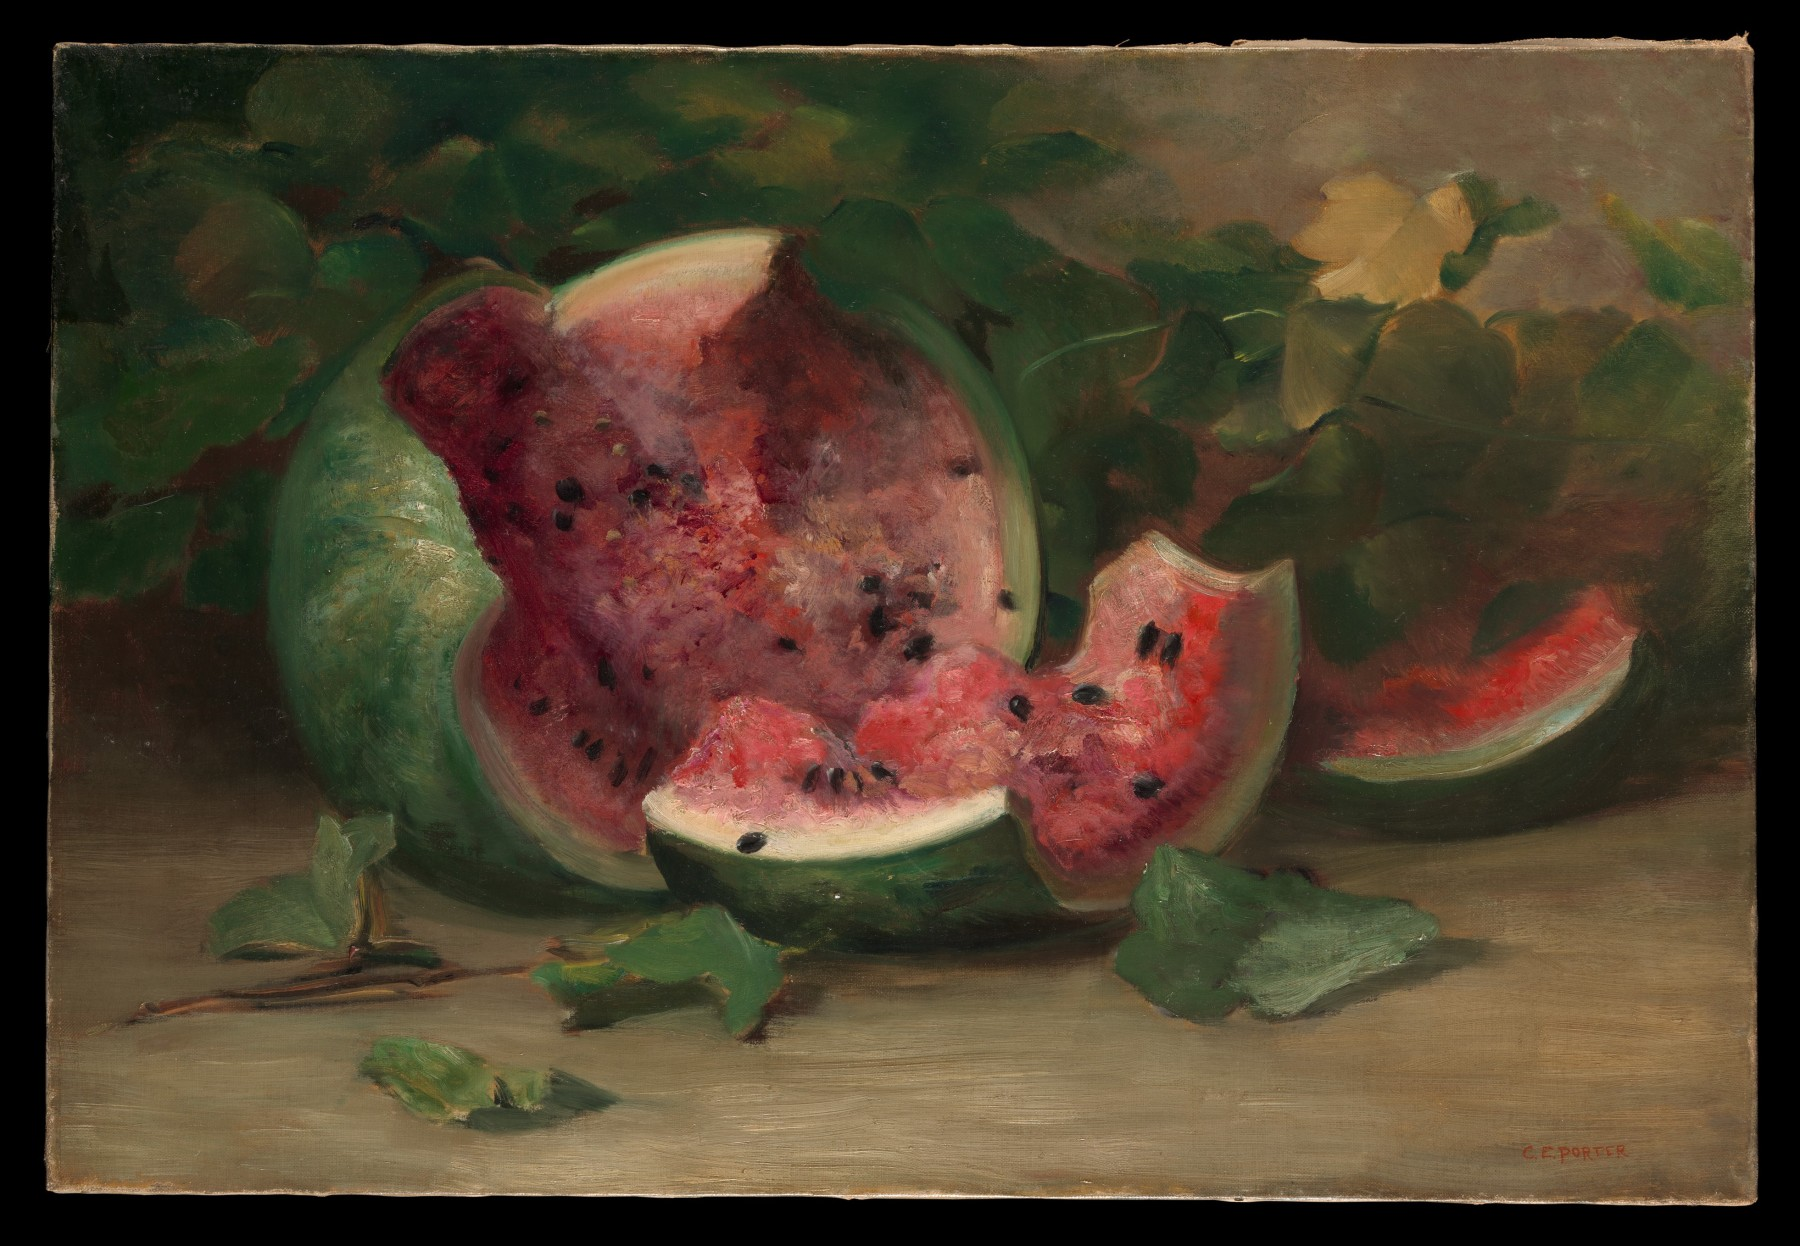 Charles Ethan Porter (1847–1923) Untitled (Cracked Watermelon), ca. 1890 American, oil on canvas; 19 1/8 × 28 3/16 in. (48.6 × 71.6 cm) The Metropolitan Museum of Art, New York, Purchase, Nancy Dunn Revocable Trust, 2015 (2015.118) http://www.metmuseum.org/Collections/search-the-collections/677910